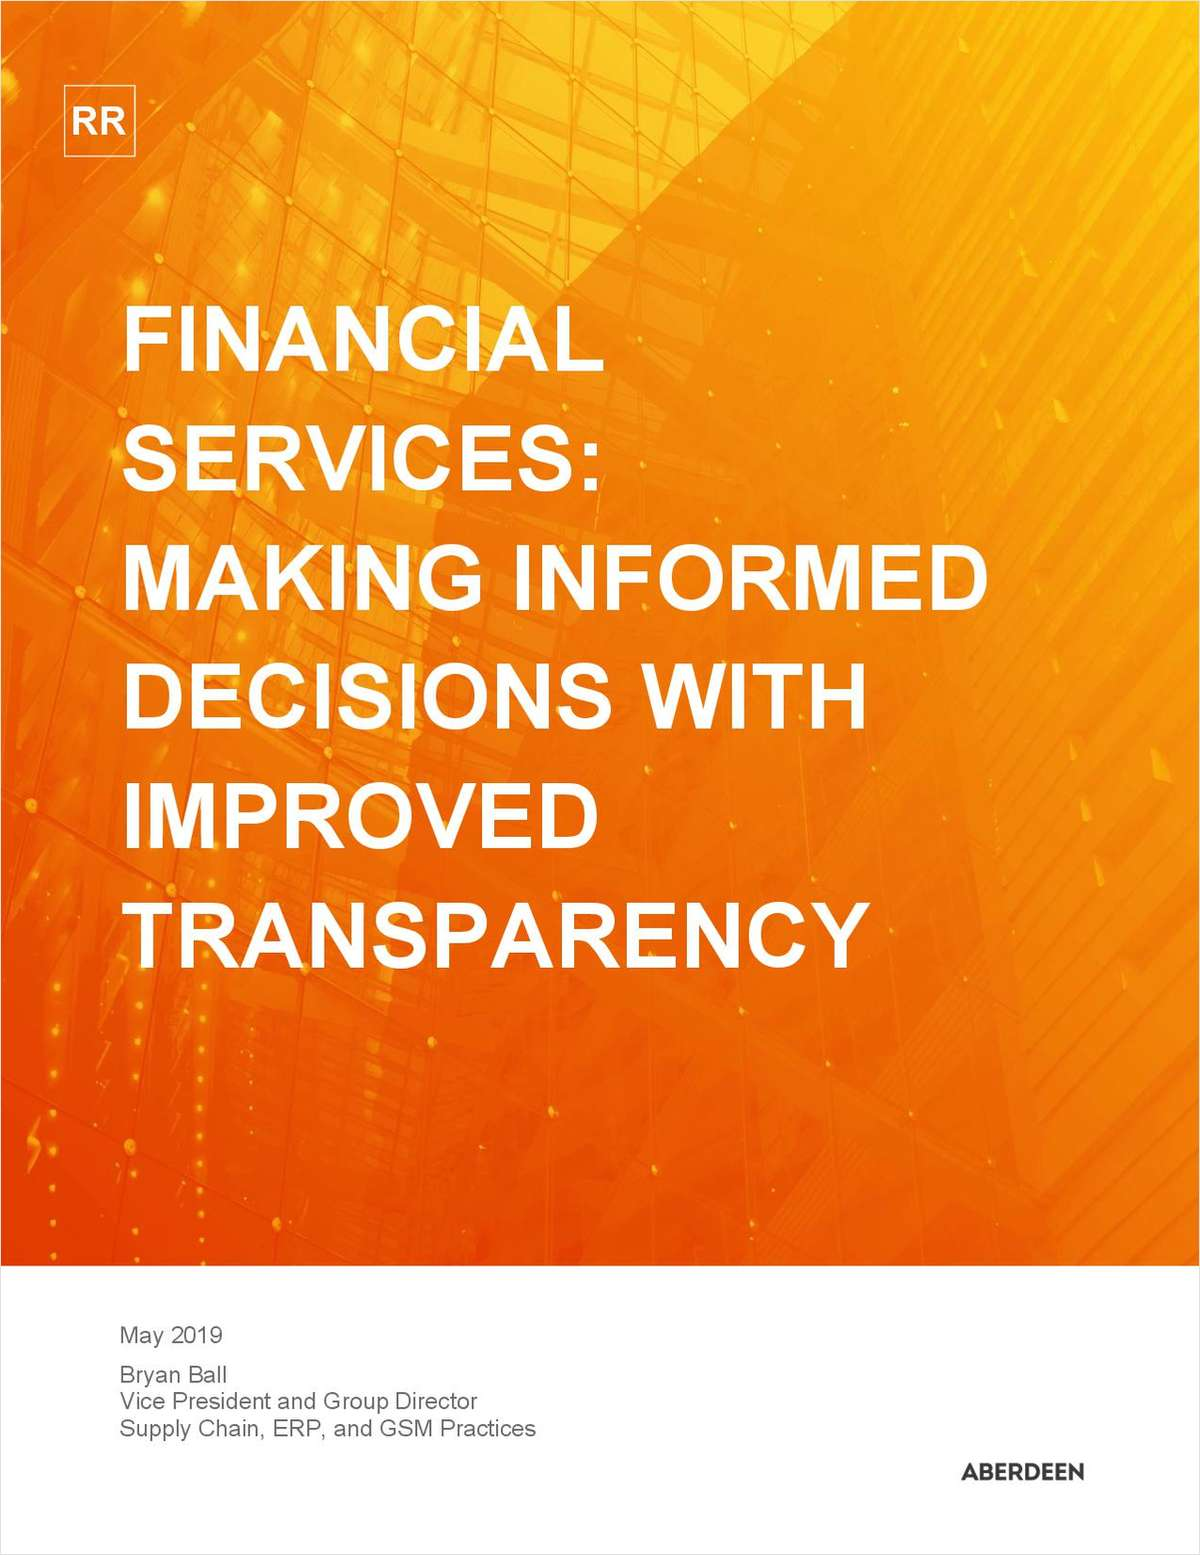 Aberdeen Report: Financial Services - Making Informed Decisions with Improved Transparency